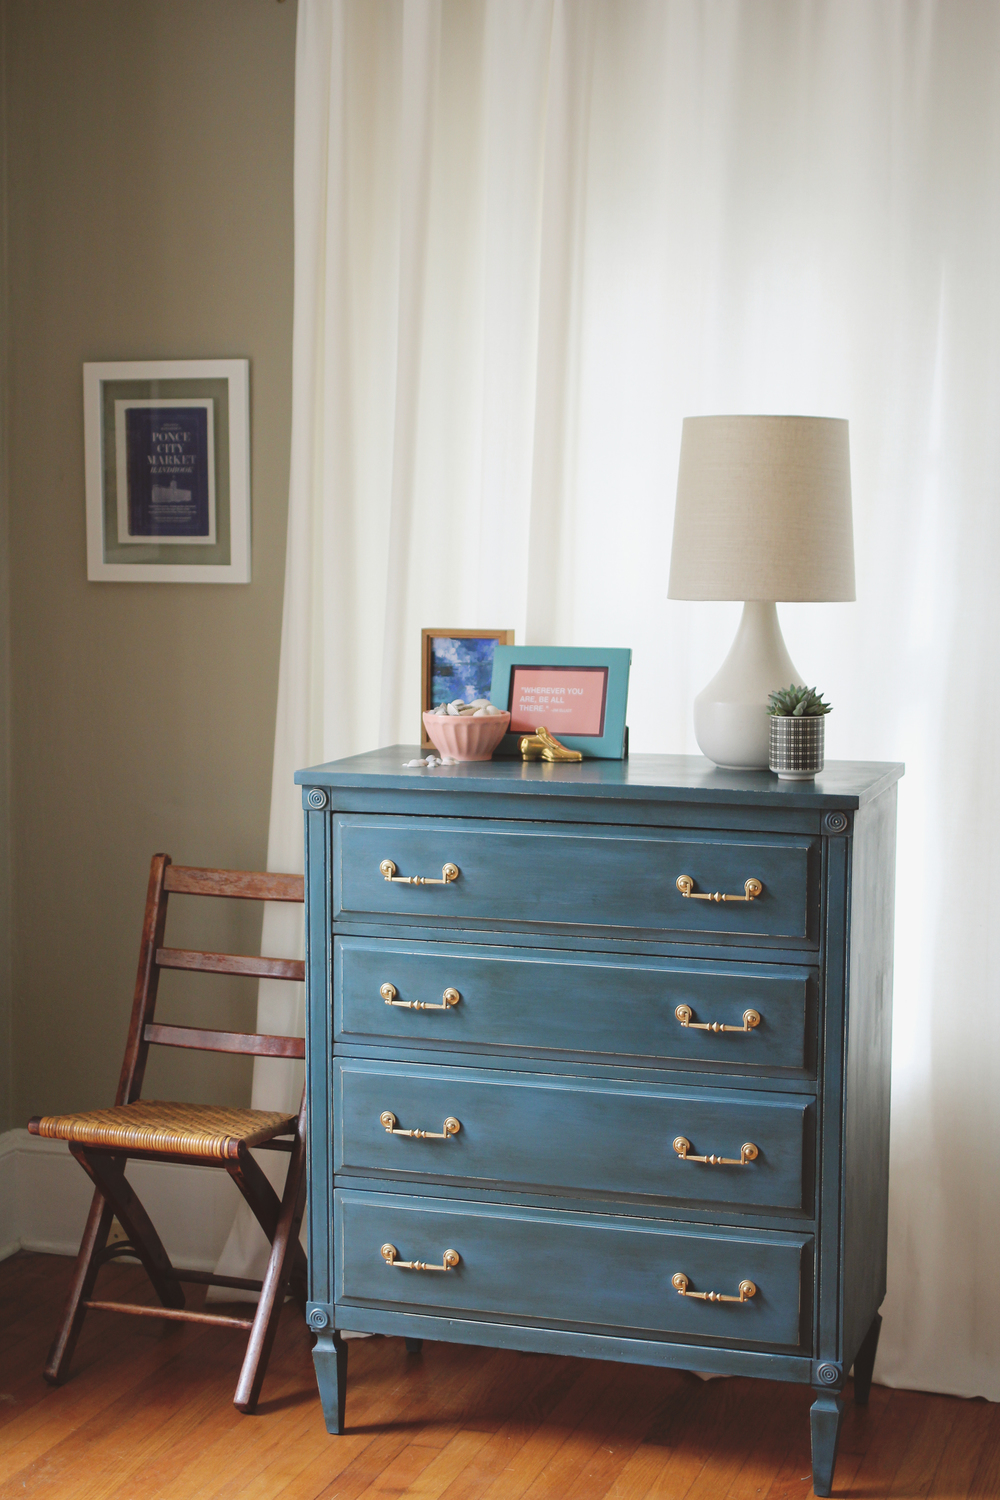 jo-torrijos-a-simpler-design-atlanta-custom-painted-furniture-annie-sloan-chalk-paint-aubusson-blue-dresser-6.jpg